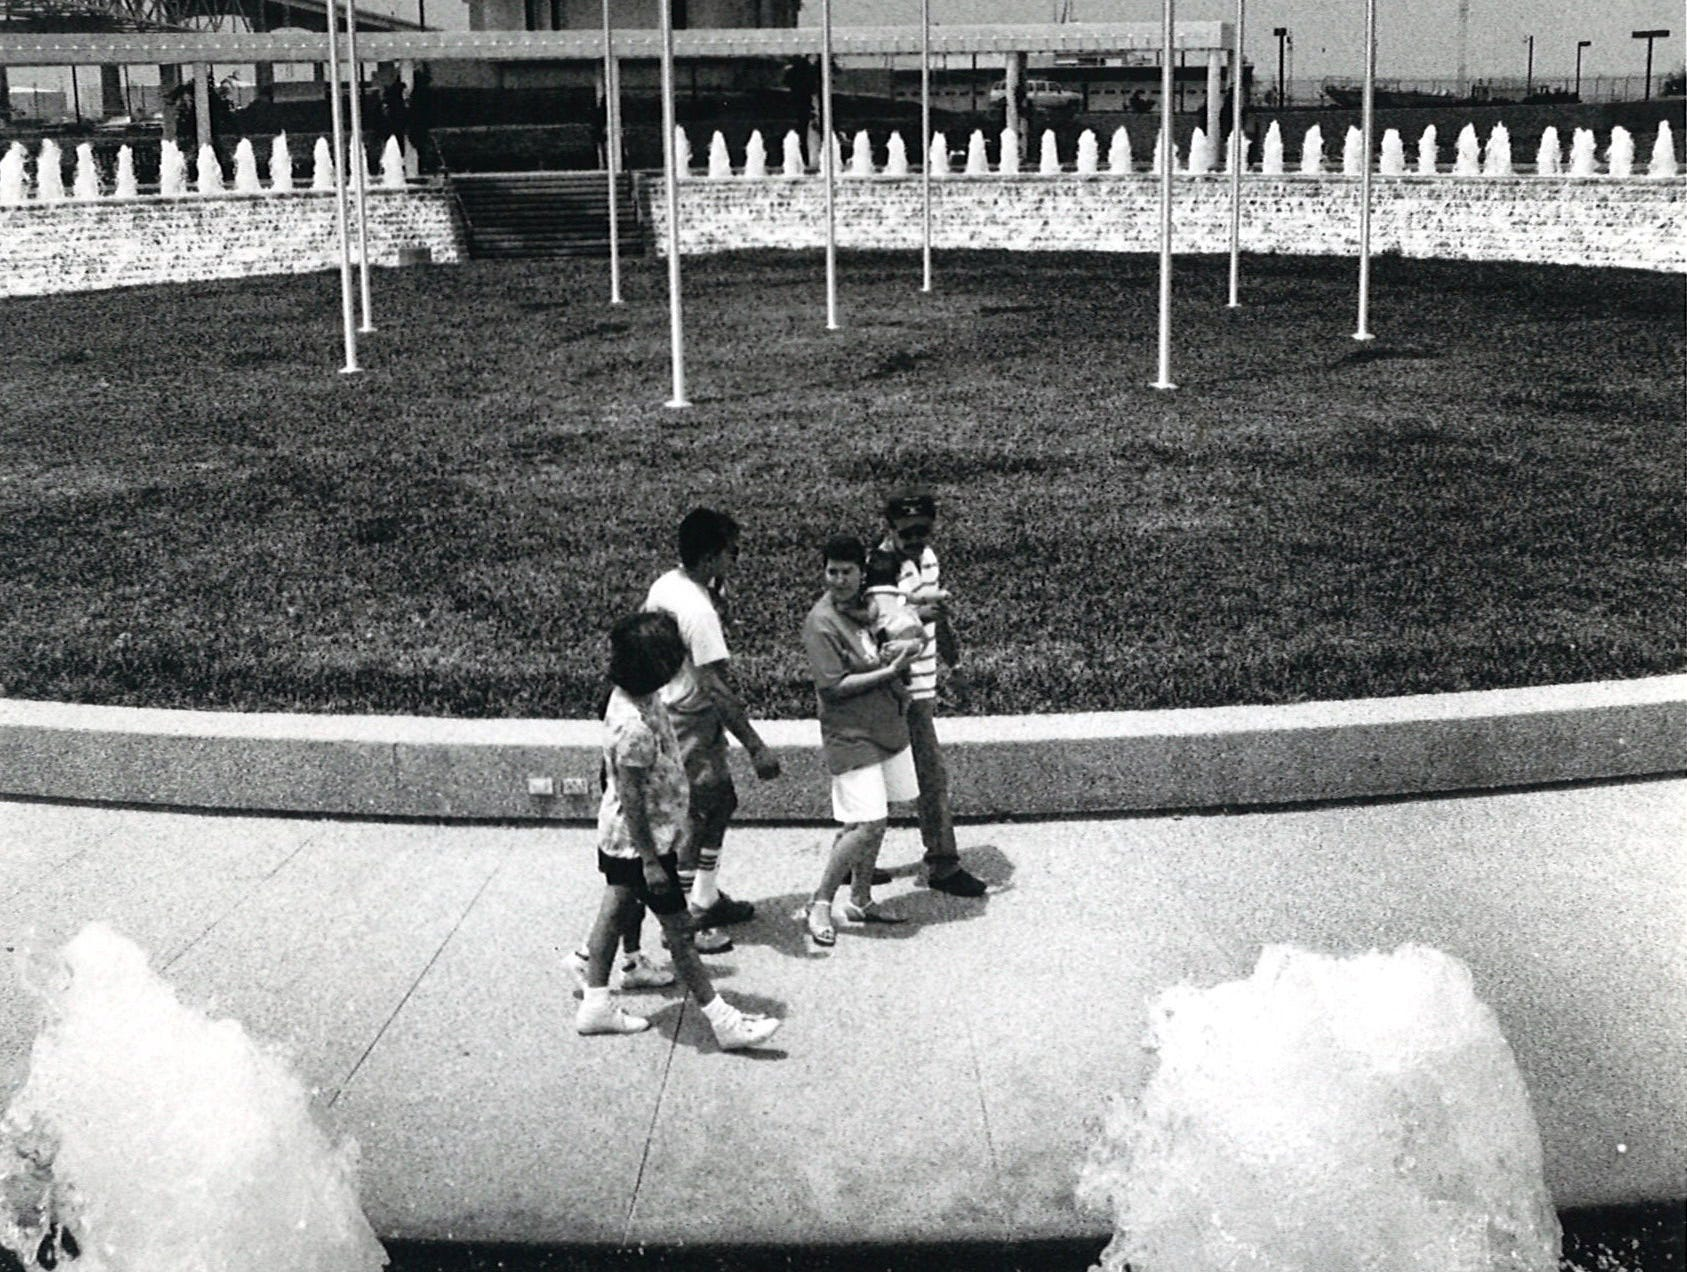 Flagpoles fly the flags of each nation that supported the U.S. during the Persian Gulf War as part of a month-long exhibit at the Corpus Christi Watergarden in July 1991.